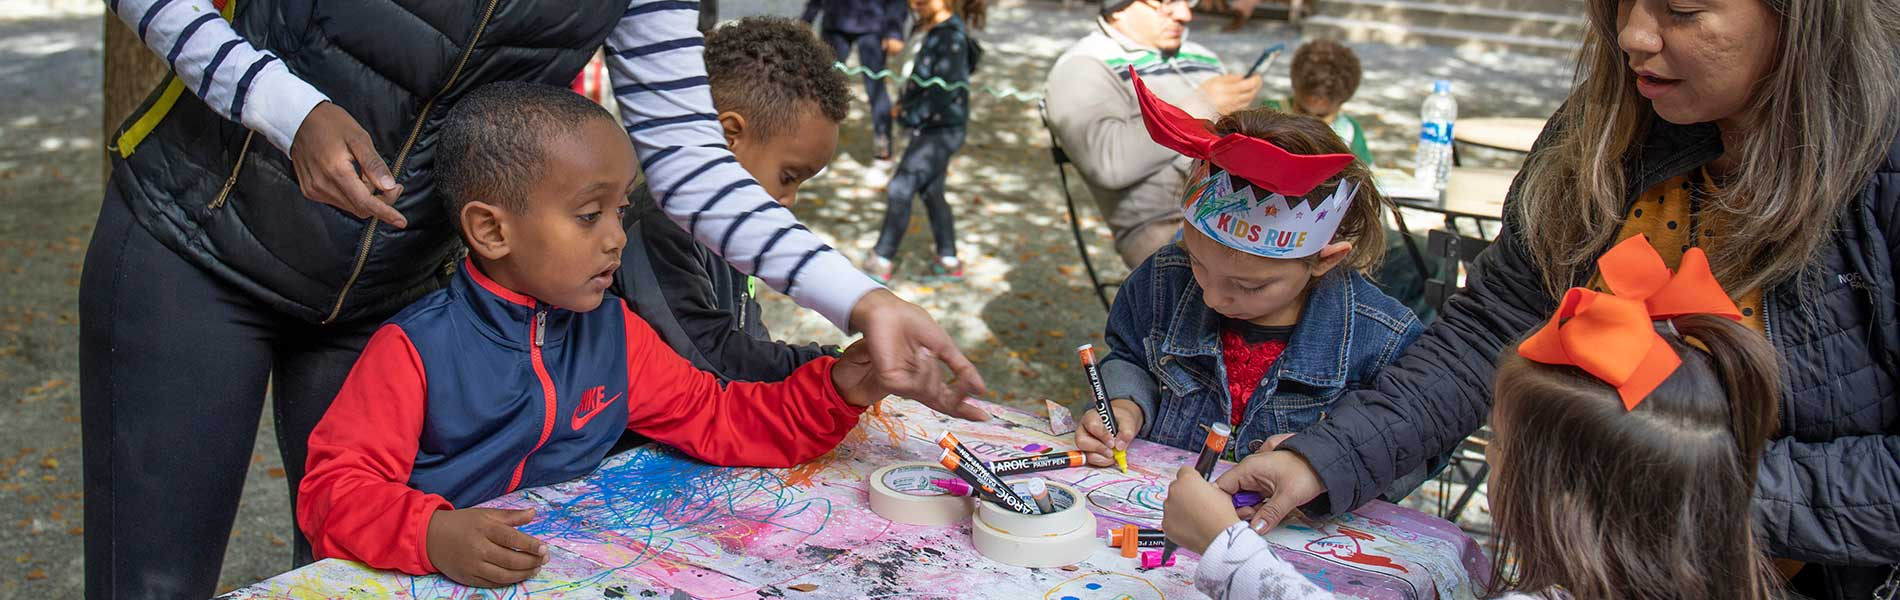 Children painting and learning to make art